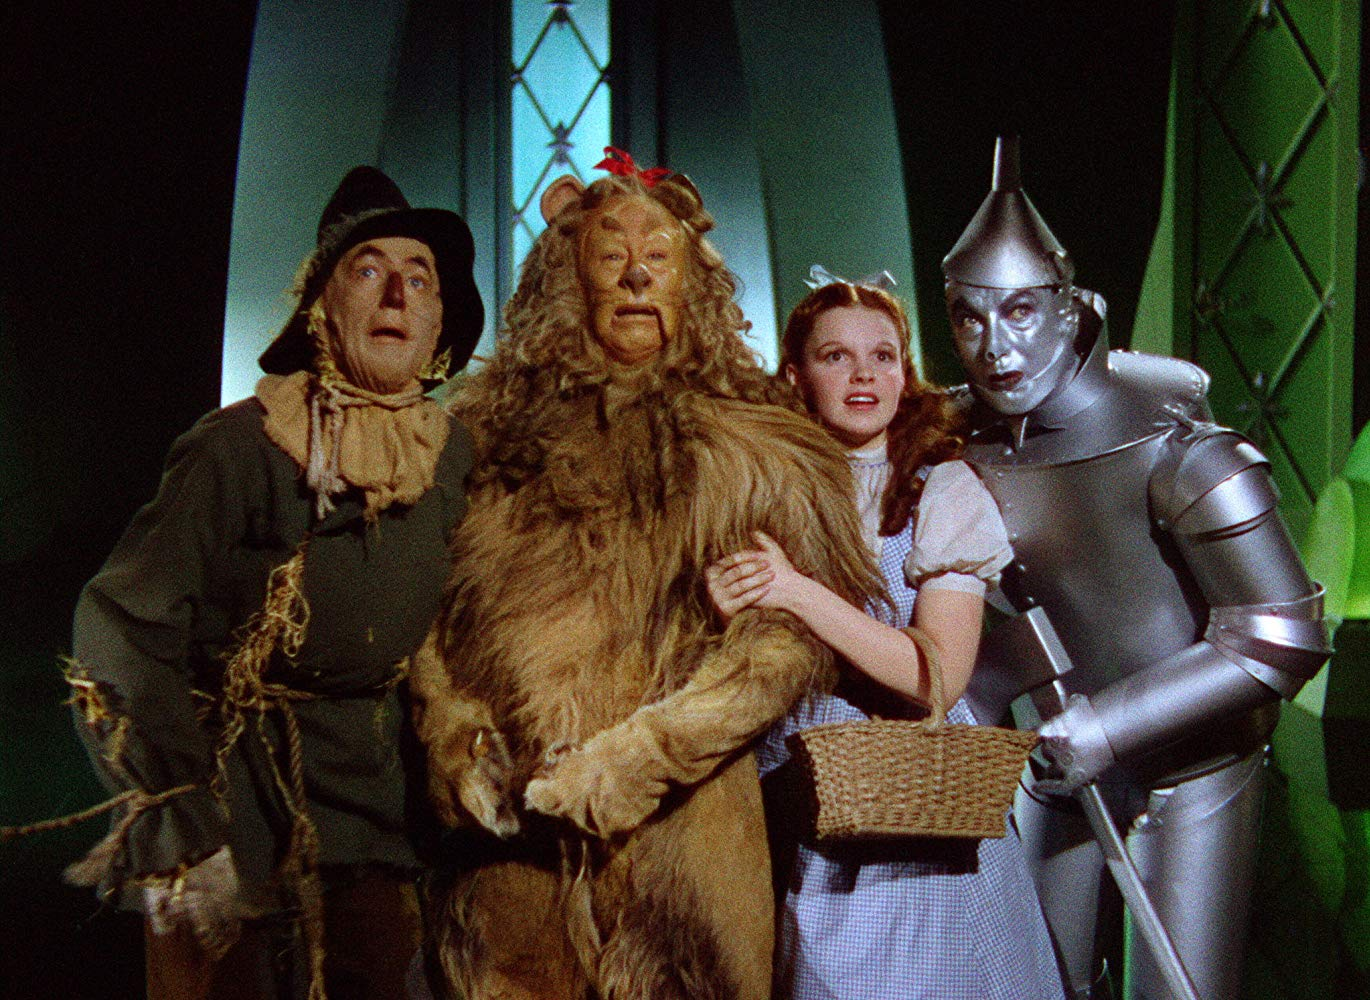 The Scarecrow (Ray Bolger), The Cowardly Lion (Bert Lahr), Dorothy (Judy Garland) and The Tin Woodsman (Jack Haley Sr) in The Wizard of Oz (1939)